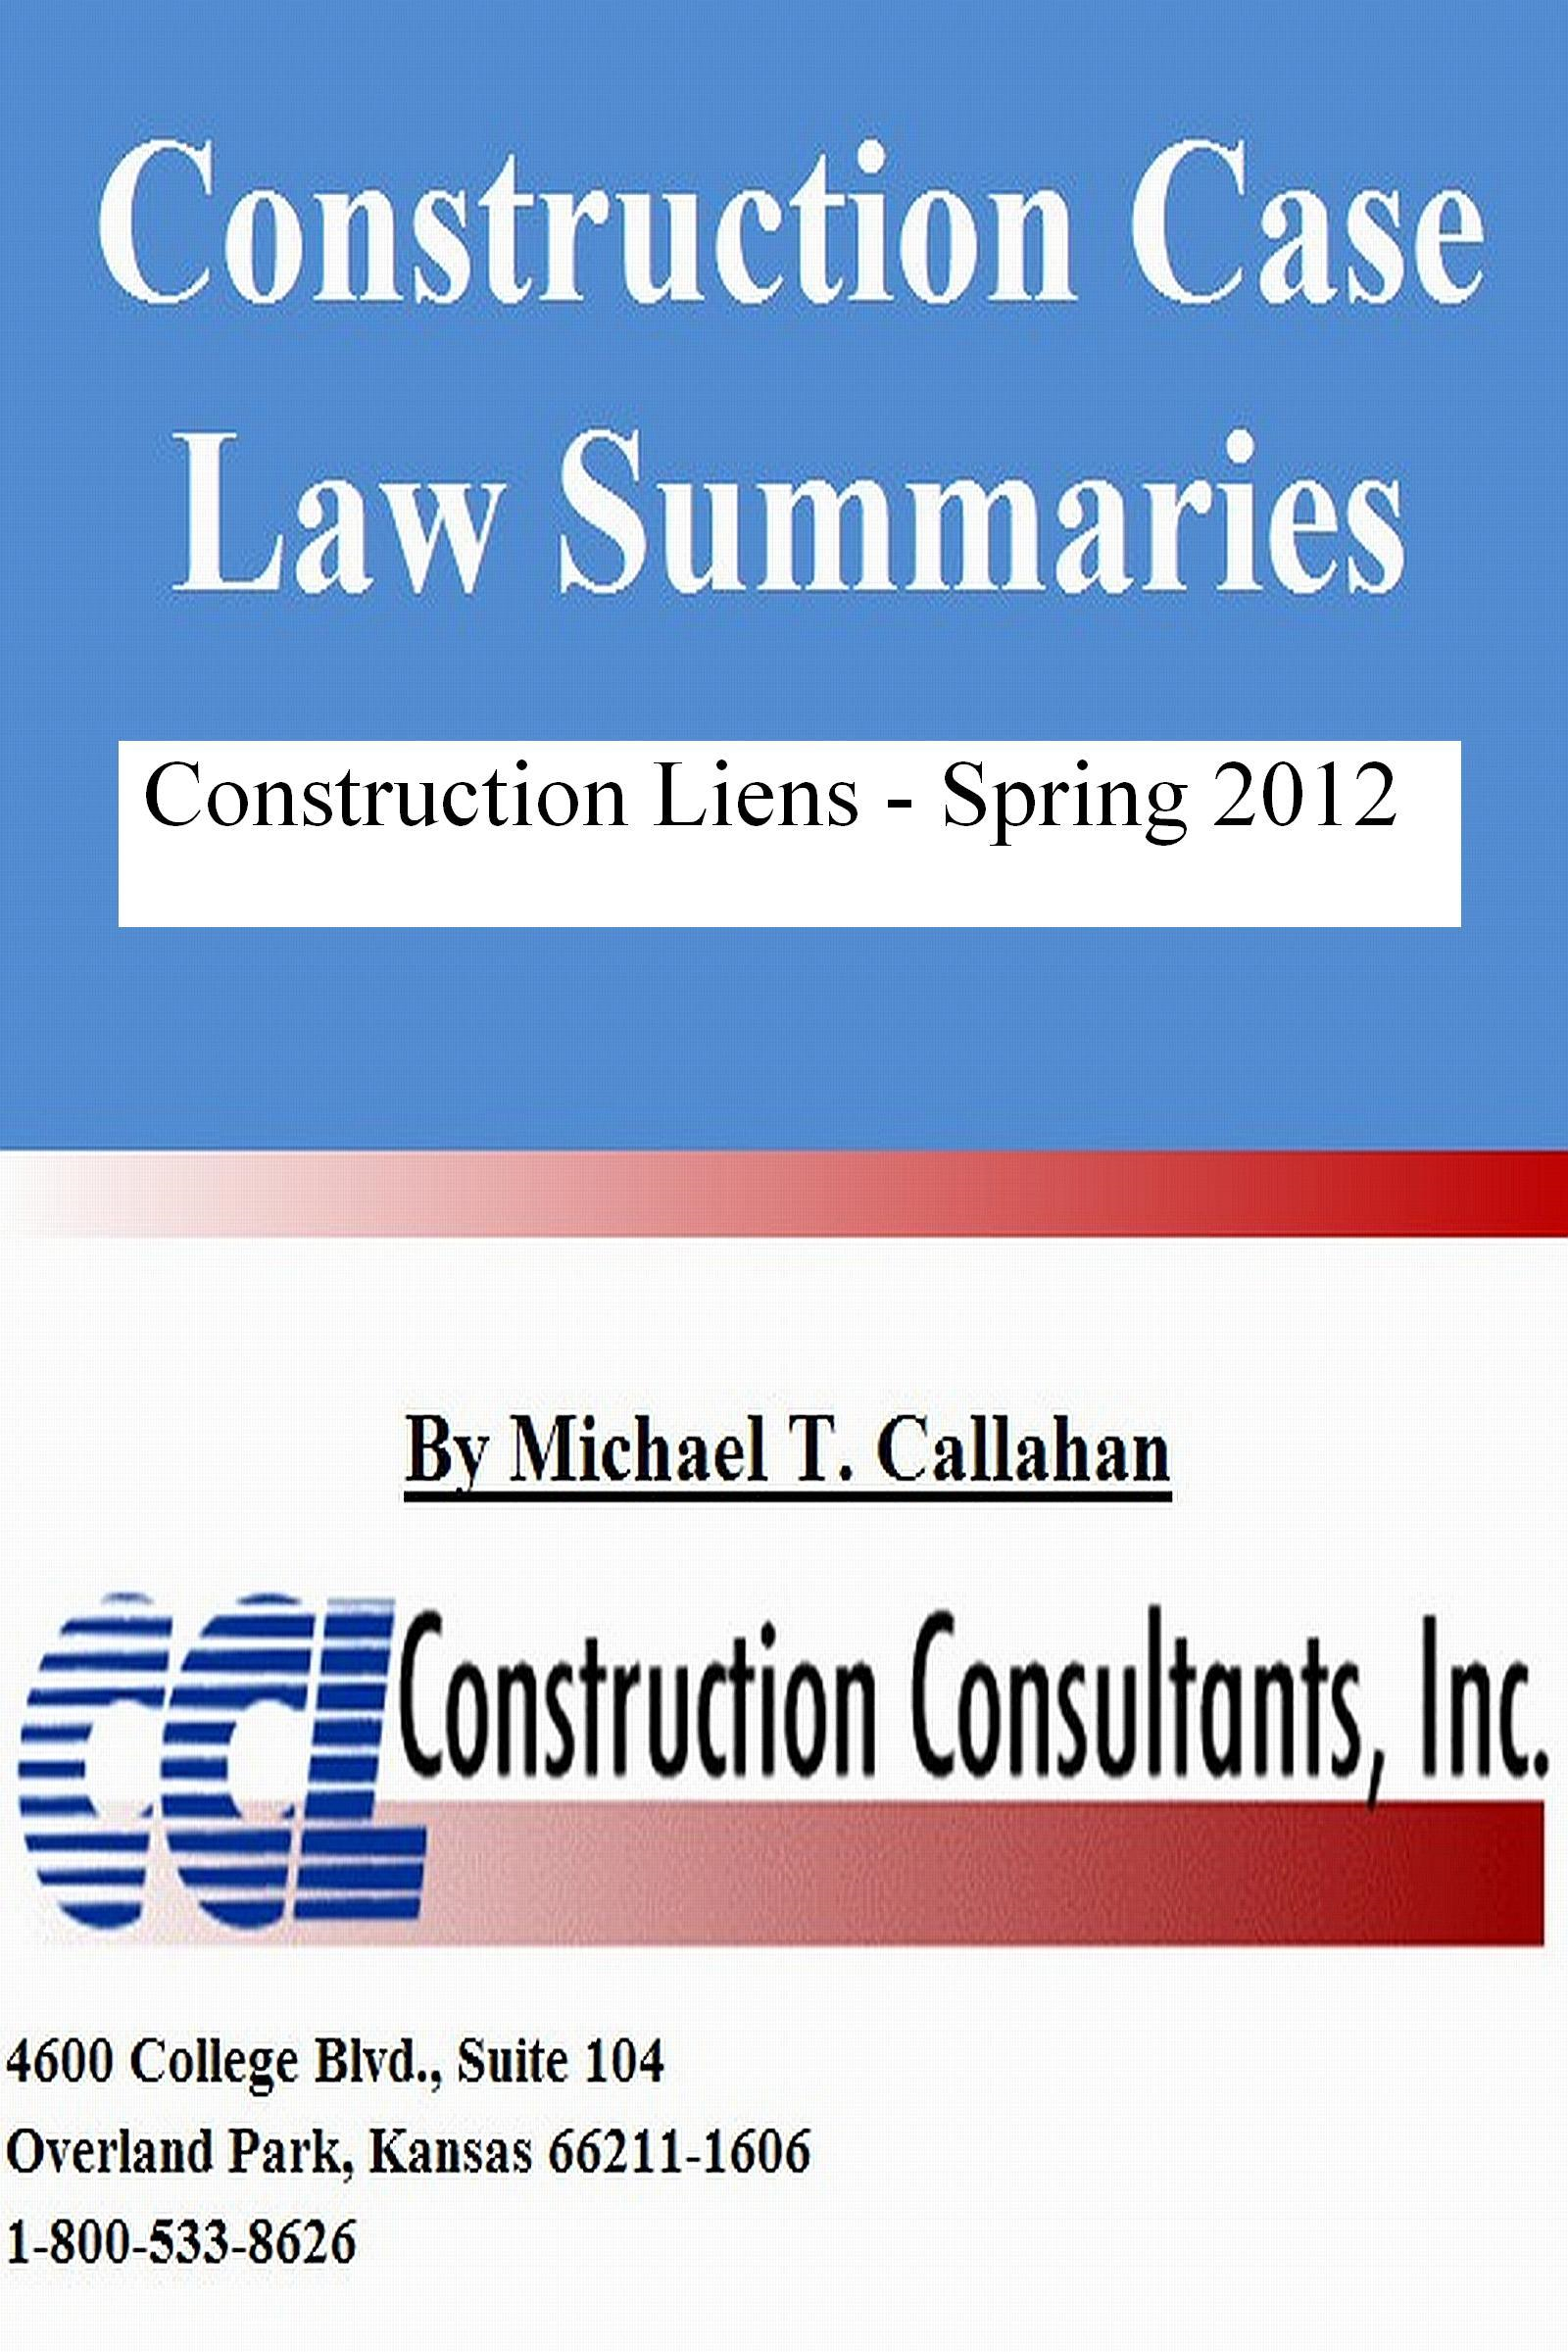 Construction Case Law Summaries: Construction Liens, Spring 2012